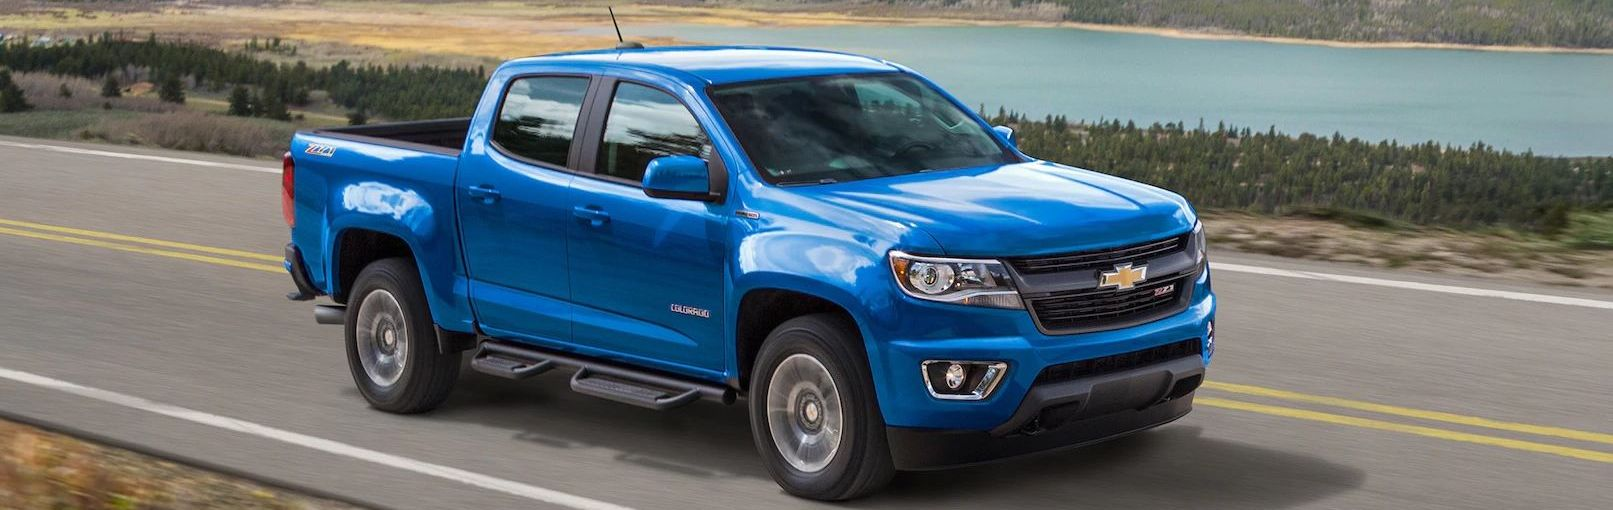 2019 Chevrolet Colorado Financing near Pensacola, FL